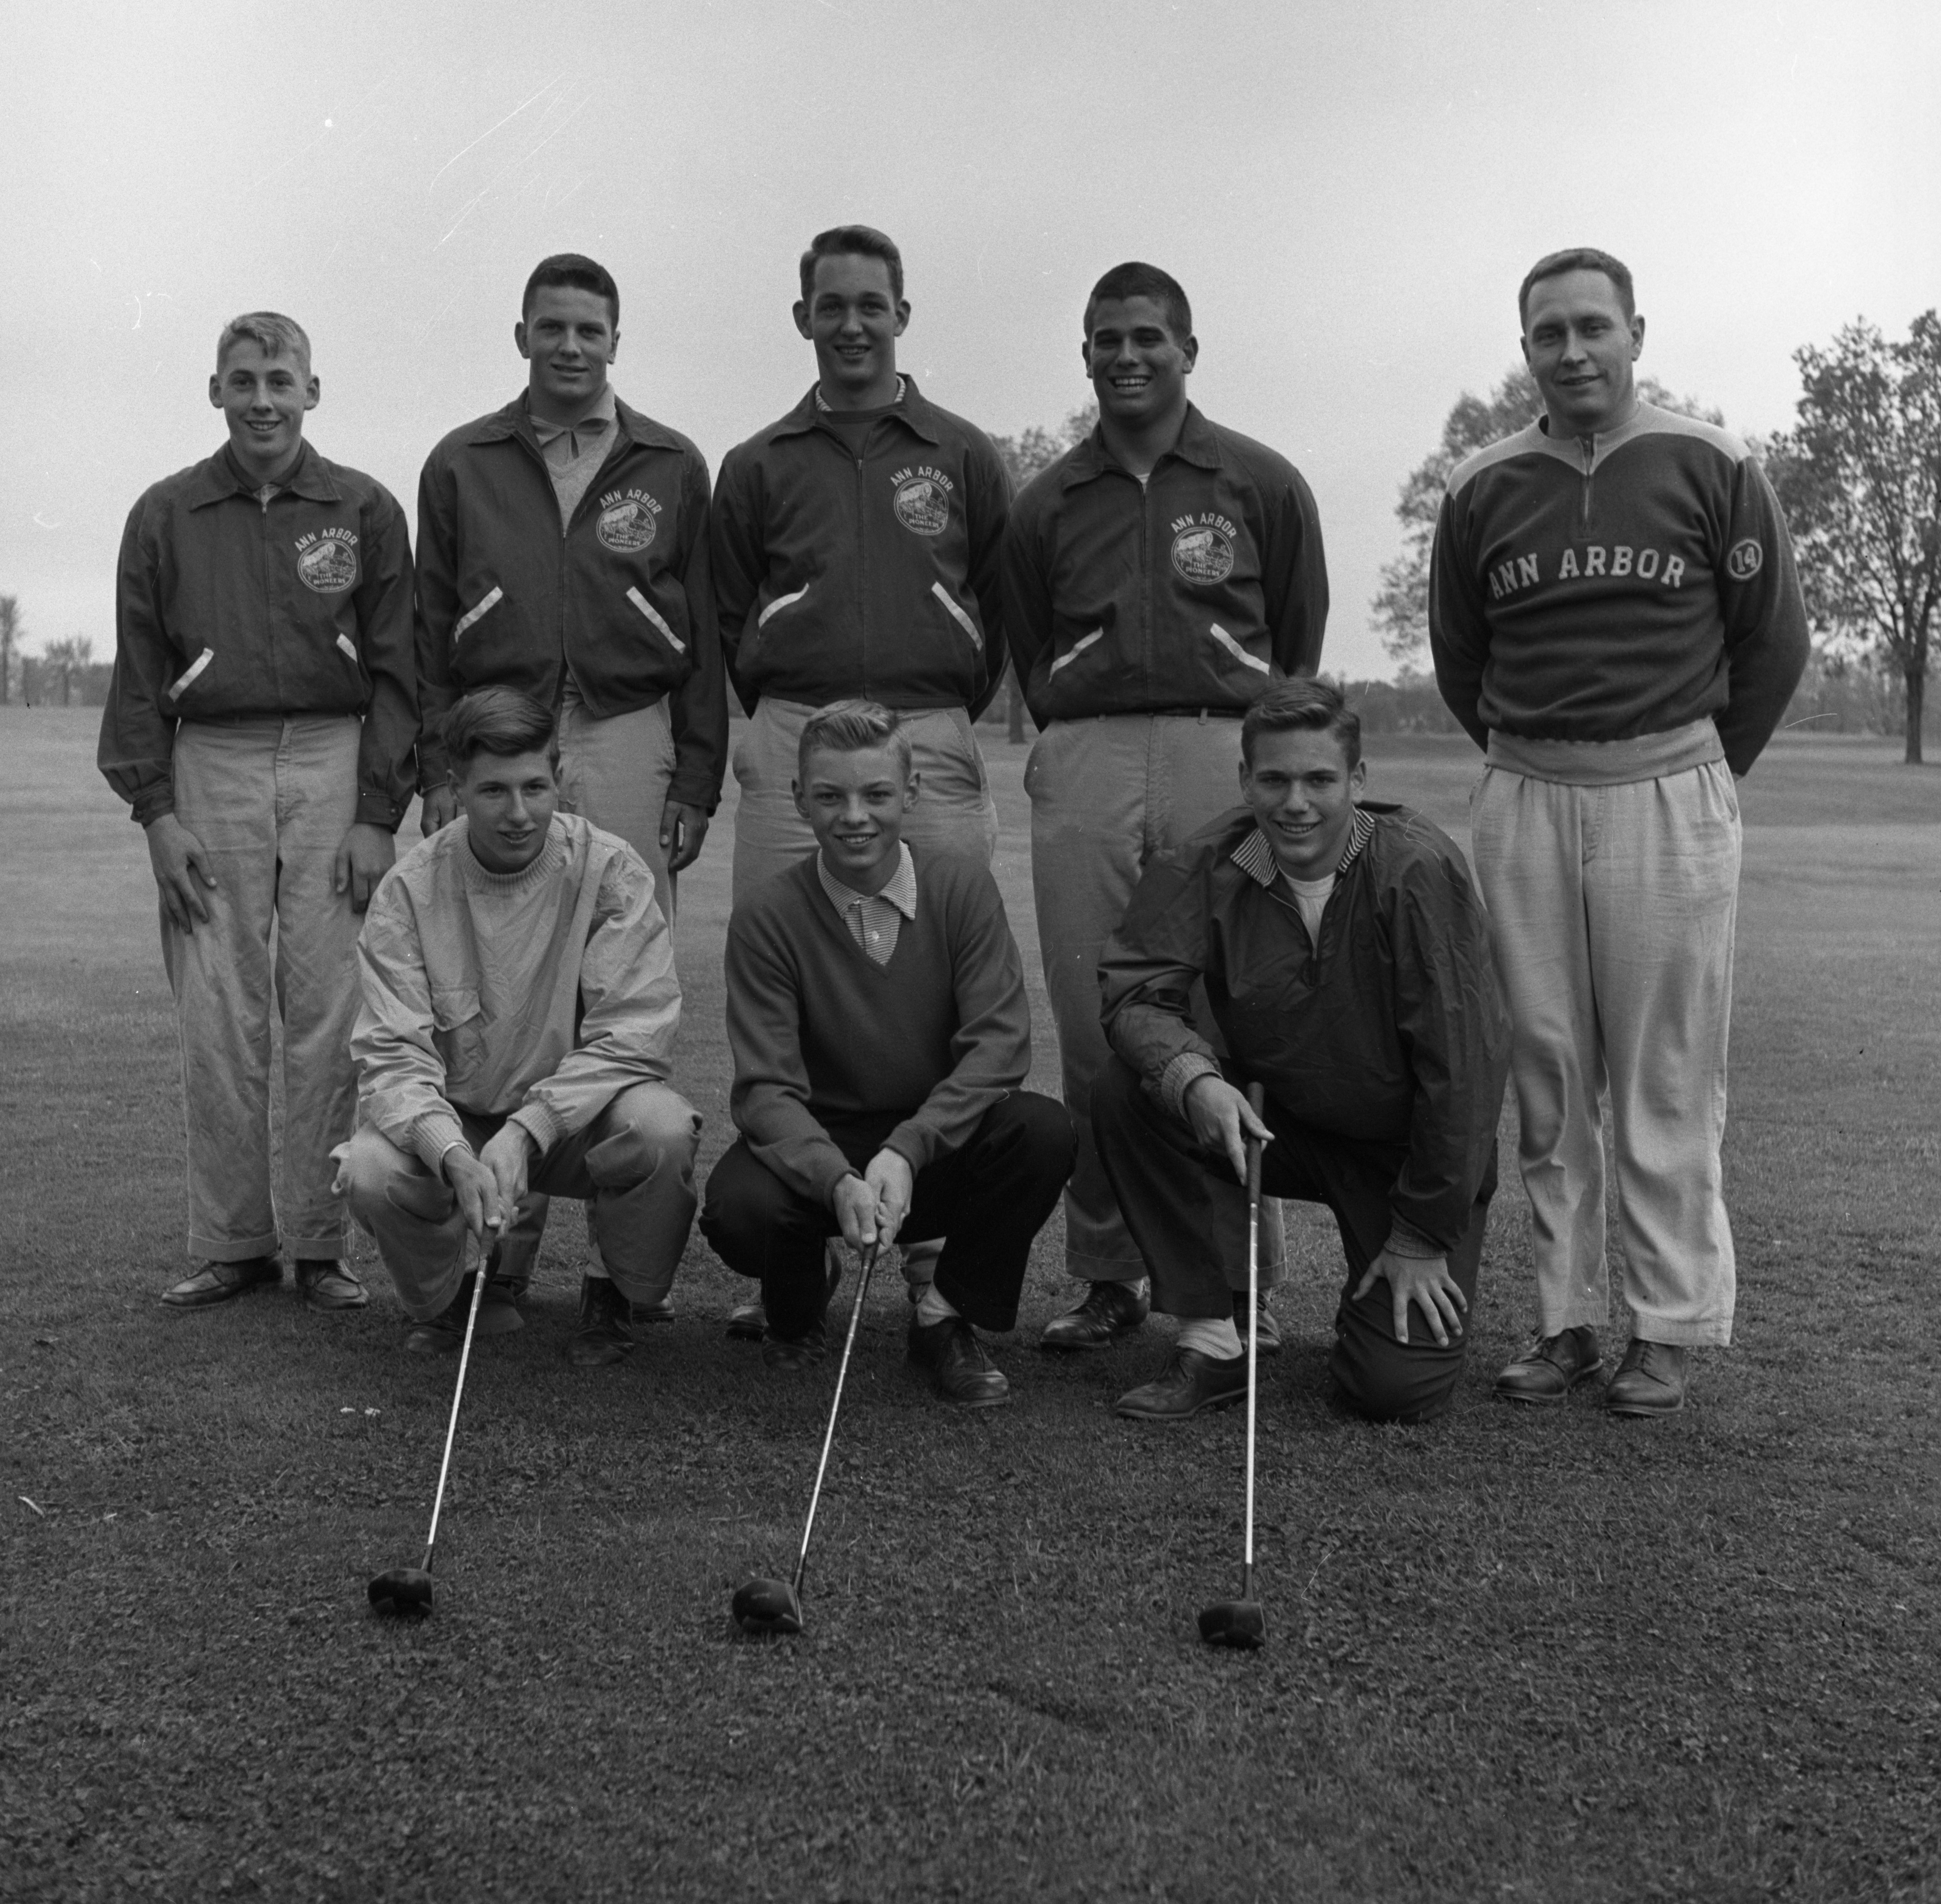 Ann Arbor High School Golfers Win Six-A League Championship, May 1957 image